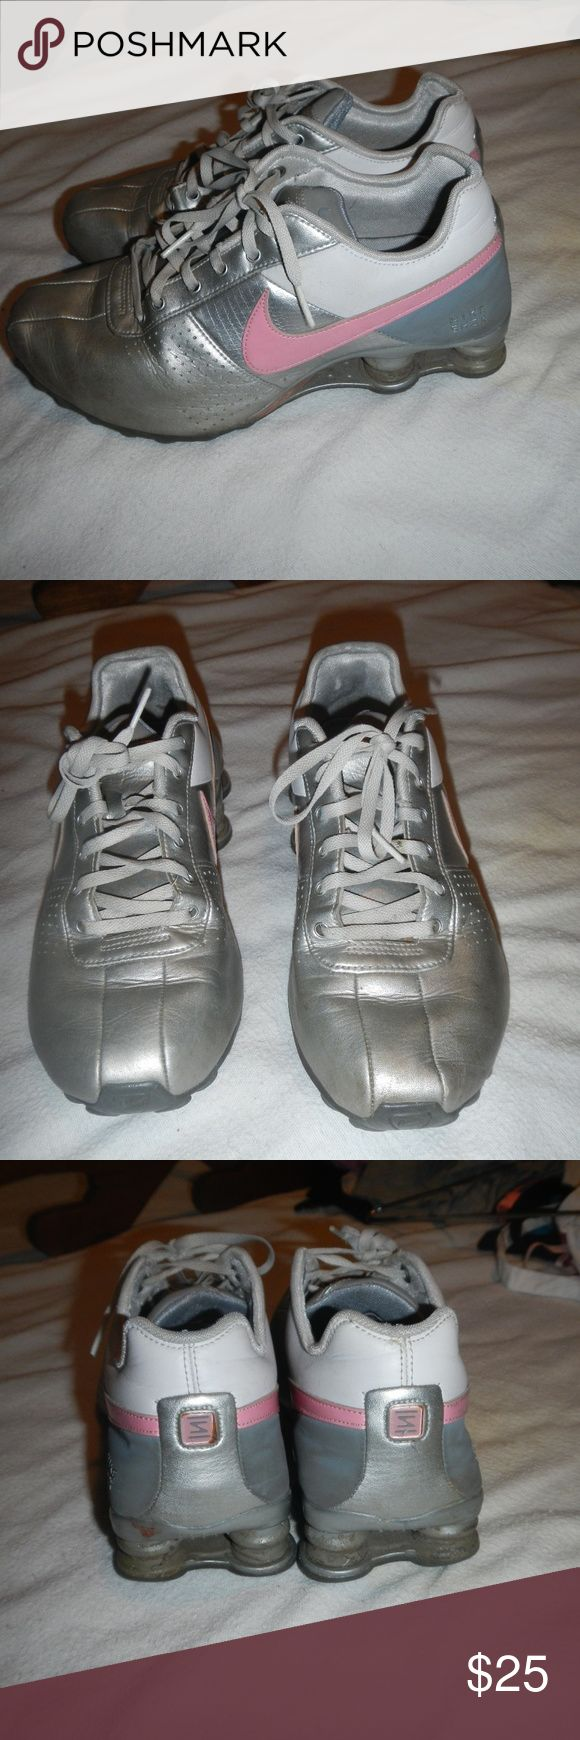 Silver/White/Pink Nike Shocks Gently worn Nike Shocks in good condition.  Could use a little cleaning.  Silver with white & pastel pink accents. Nike Shoes Athletic Shoes